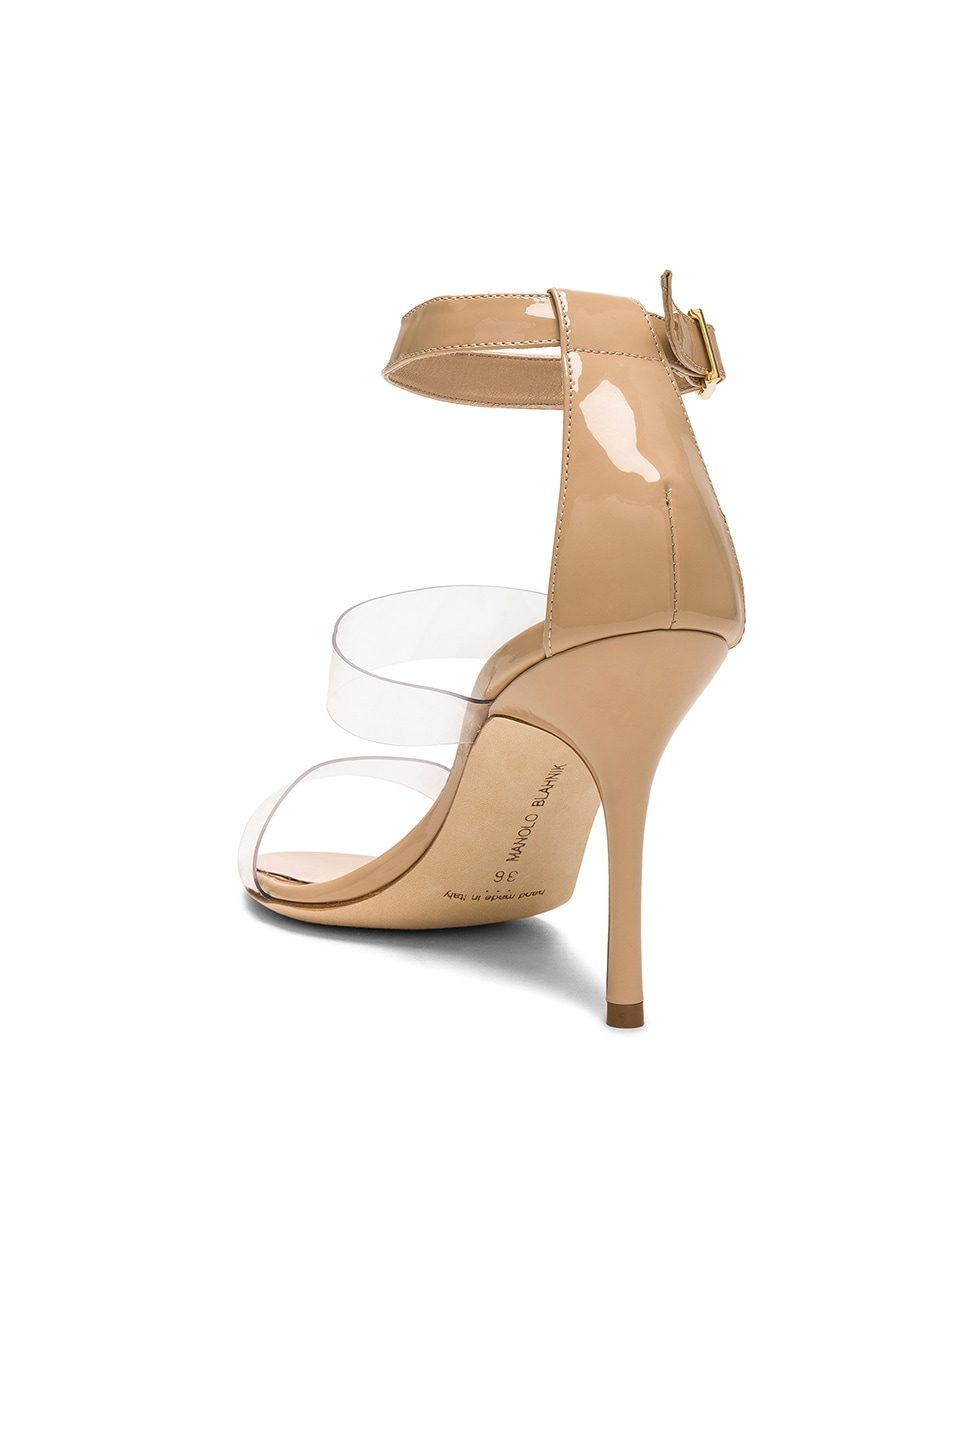 Image 3 of Manolo Blahnik Patent Leather & PVC Kaotic 90 Sandals in Nude Patent & Clear PVC